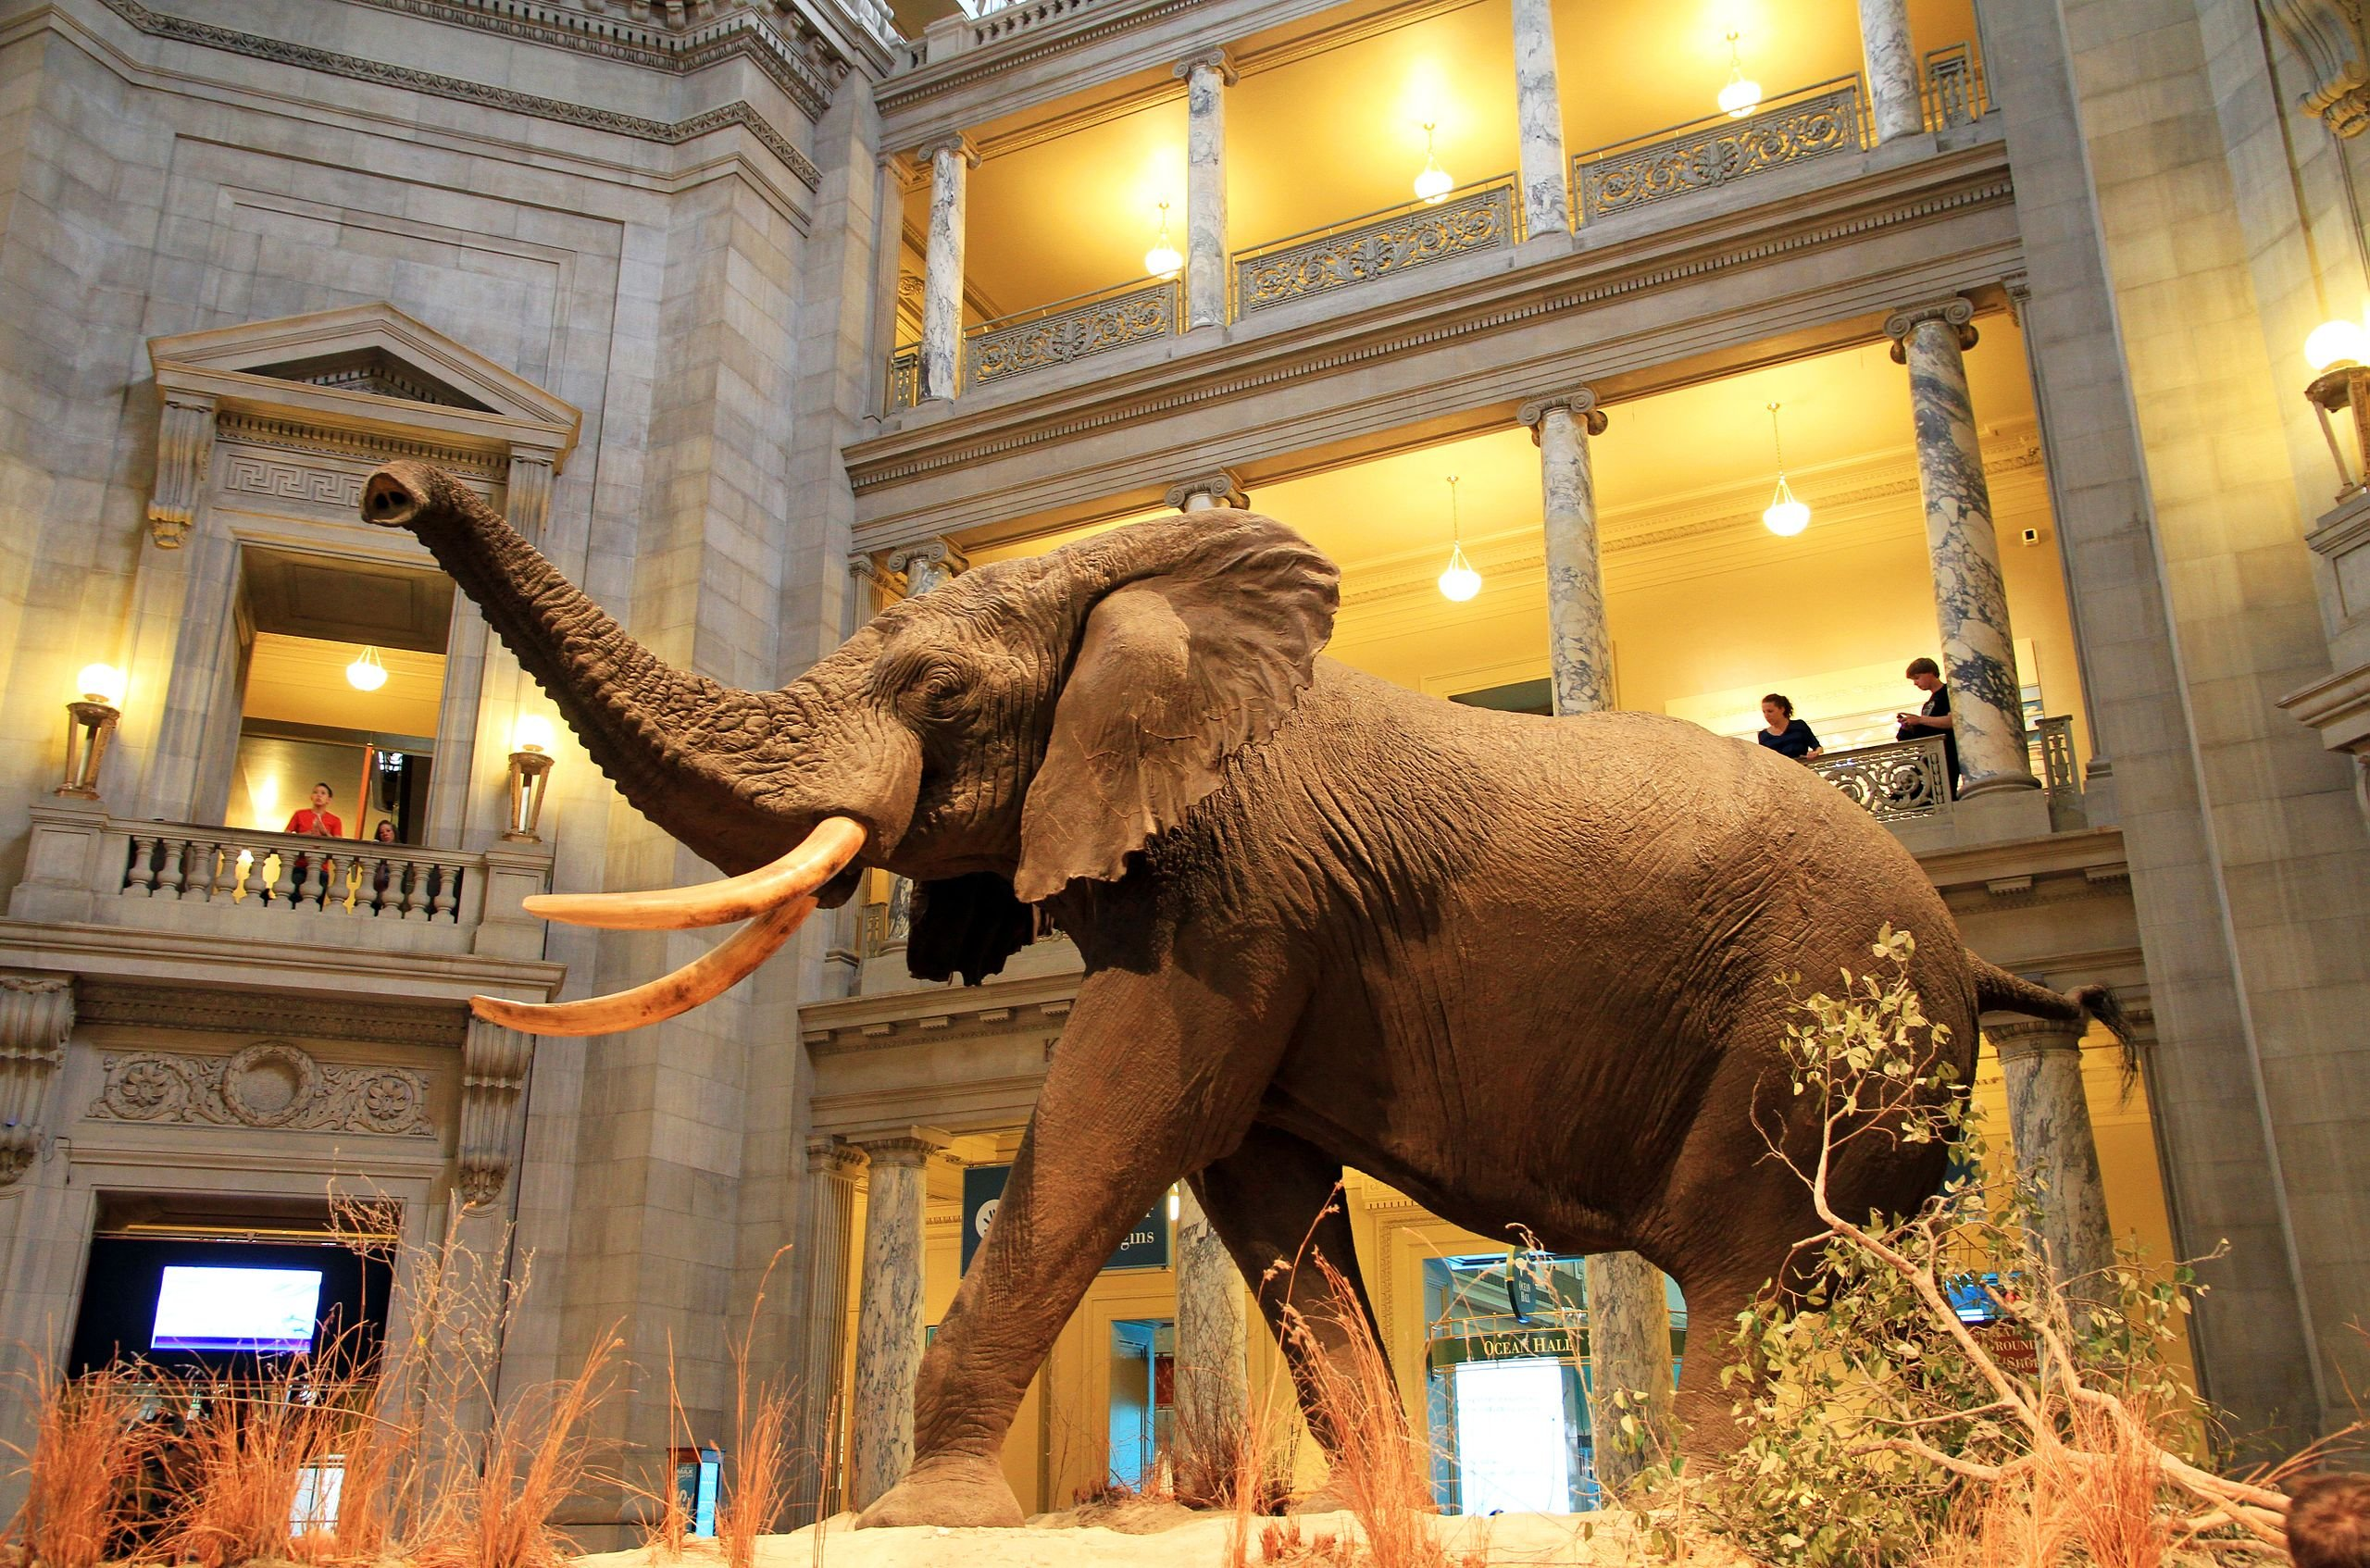 The grand rotunda houses an African elephant that debuted in 1959. At the time, it was the largest land mammal on exhibit at a museum. Photo courtesy Ingfbruno, Wikimedia.